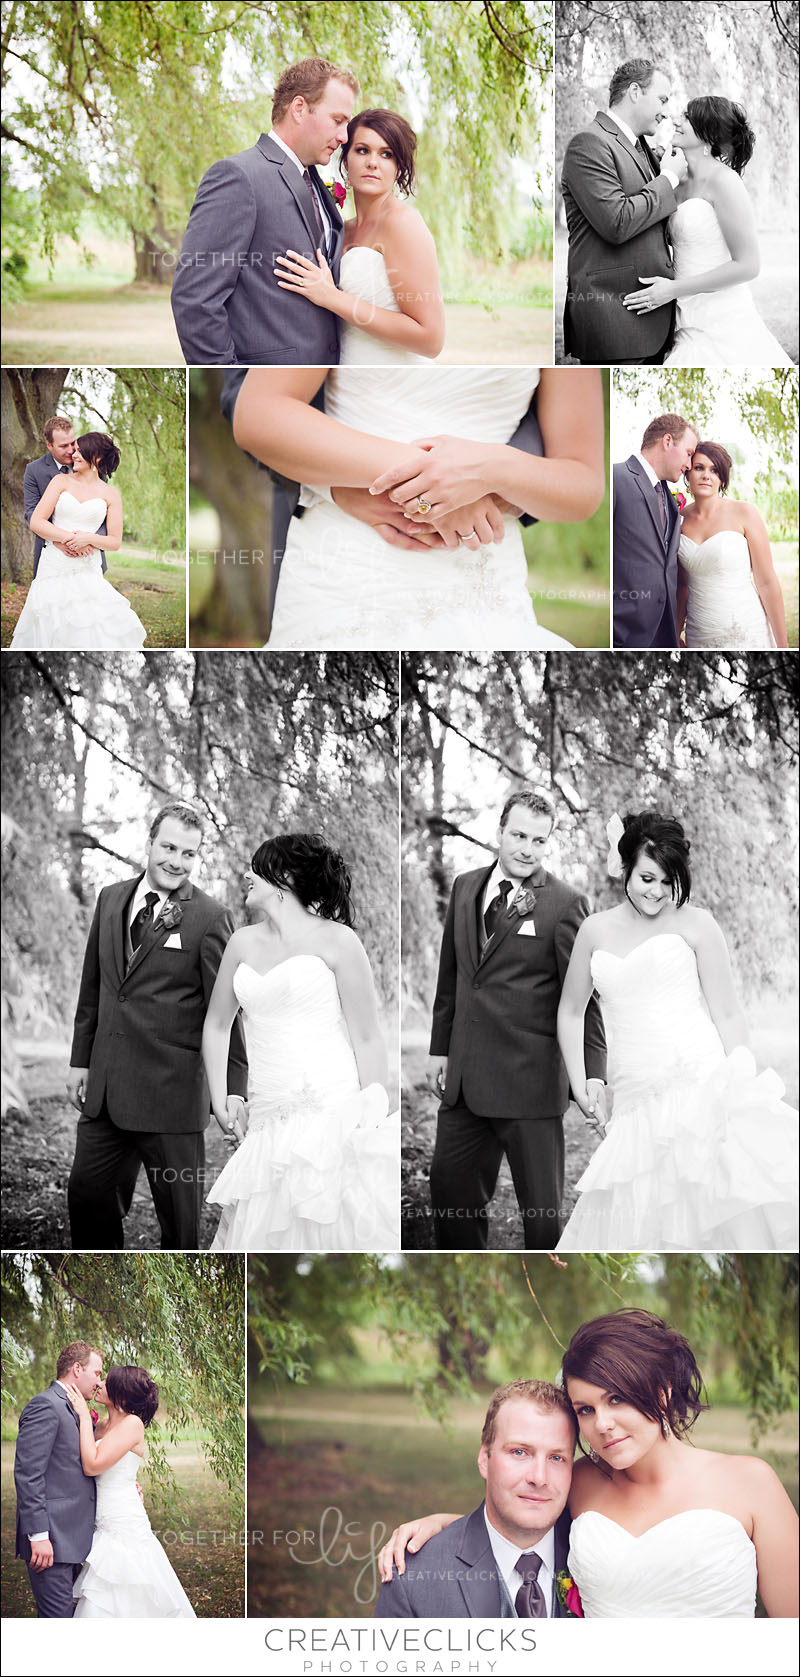 Gorgeous bride and groom outdoor portraits